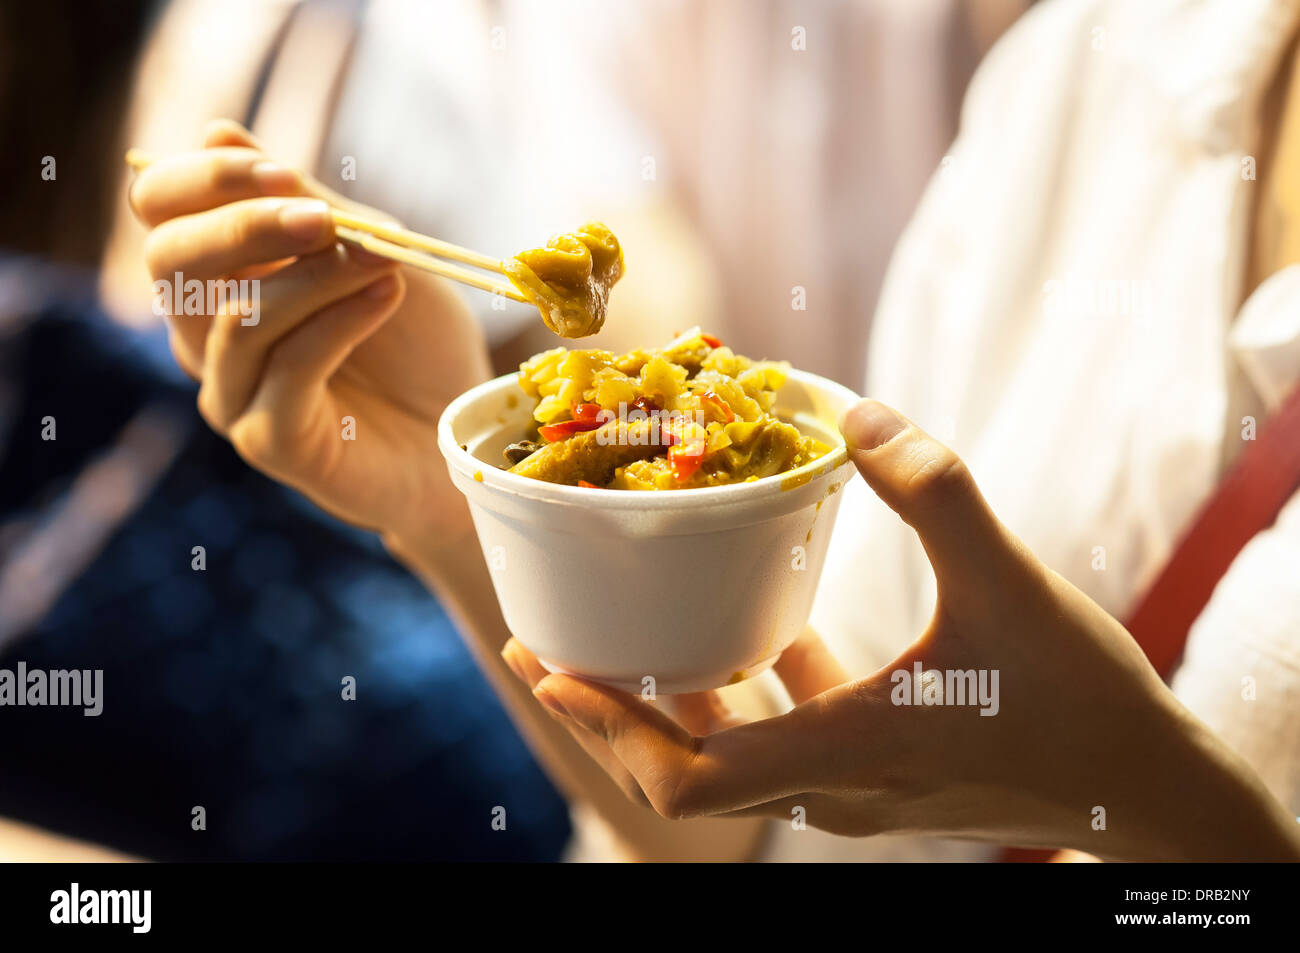 Curry Organe in einen Topf, Hongkong Street food Stockbild